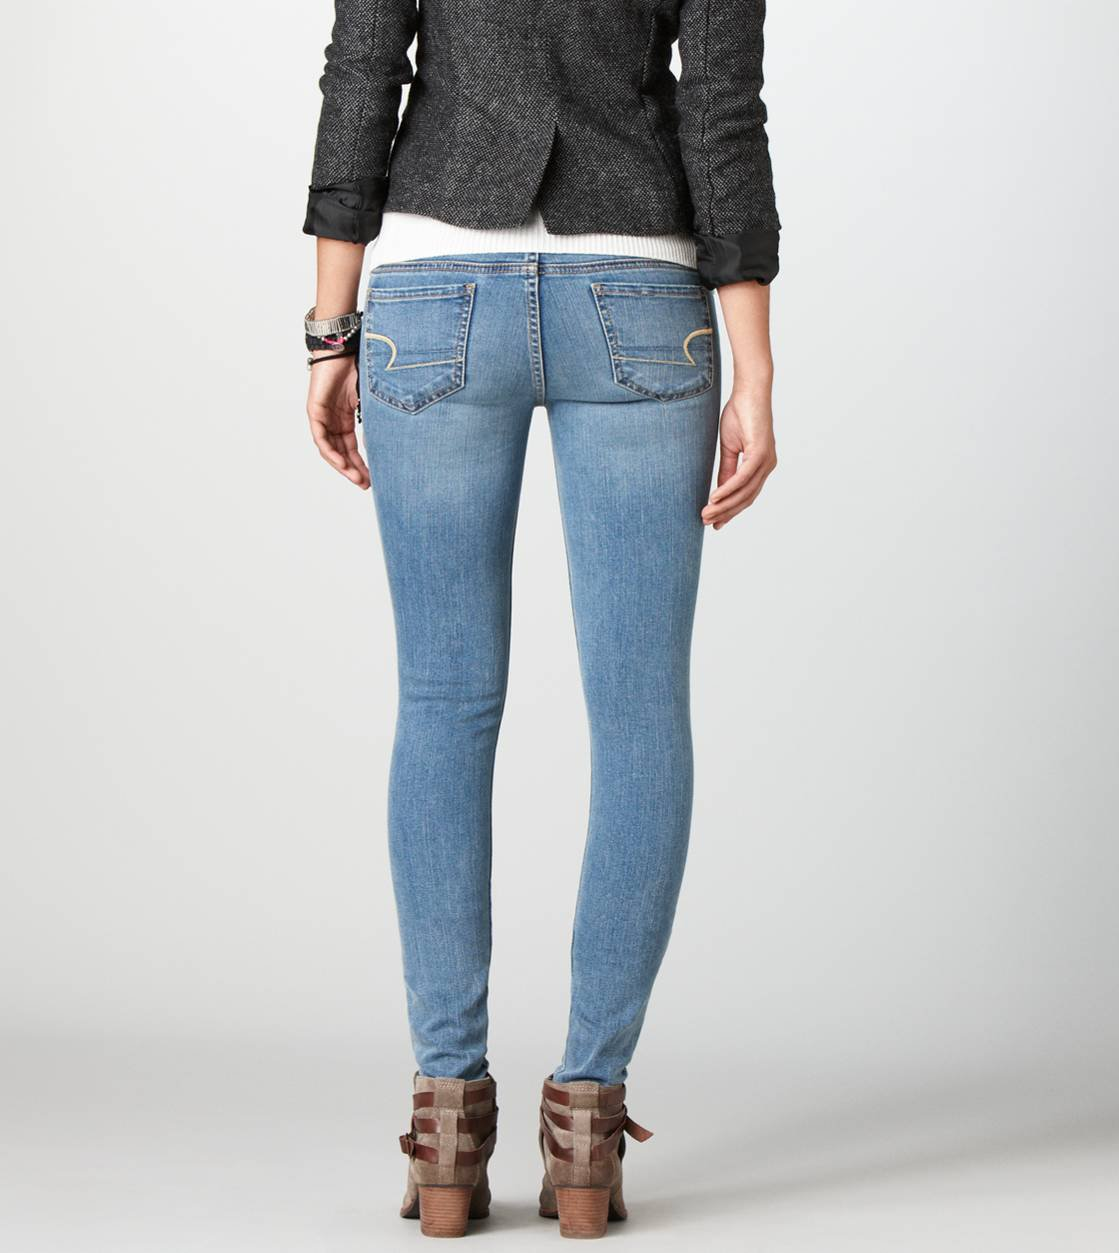 Womens Jeans Denim Jeans For Women American Eagle Outfitters